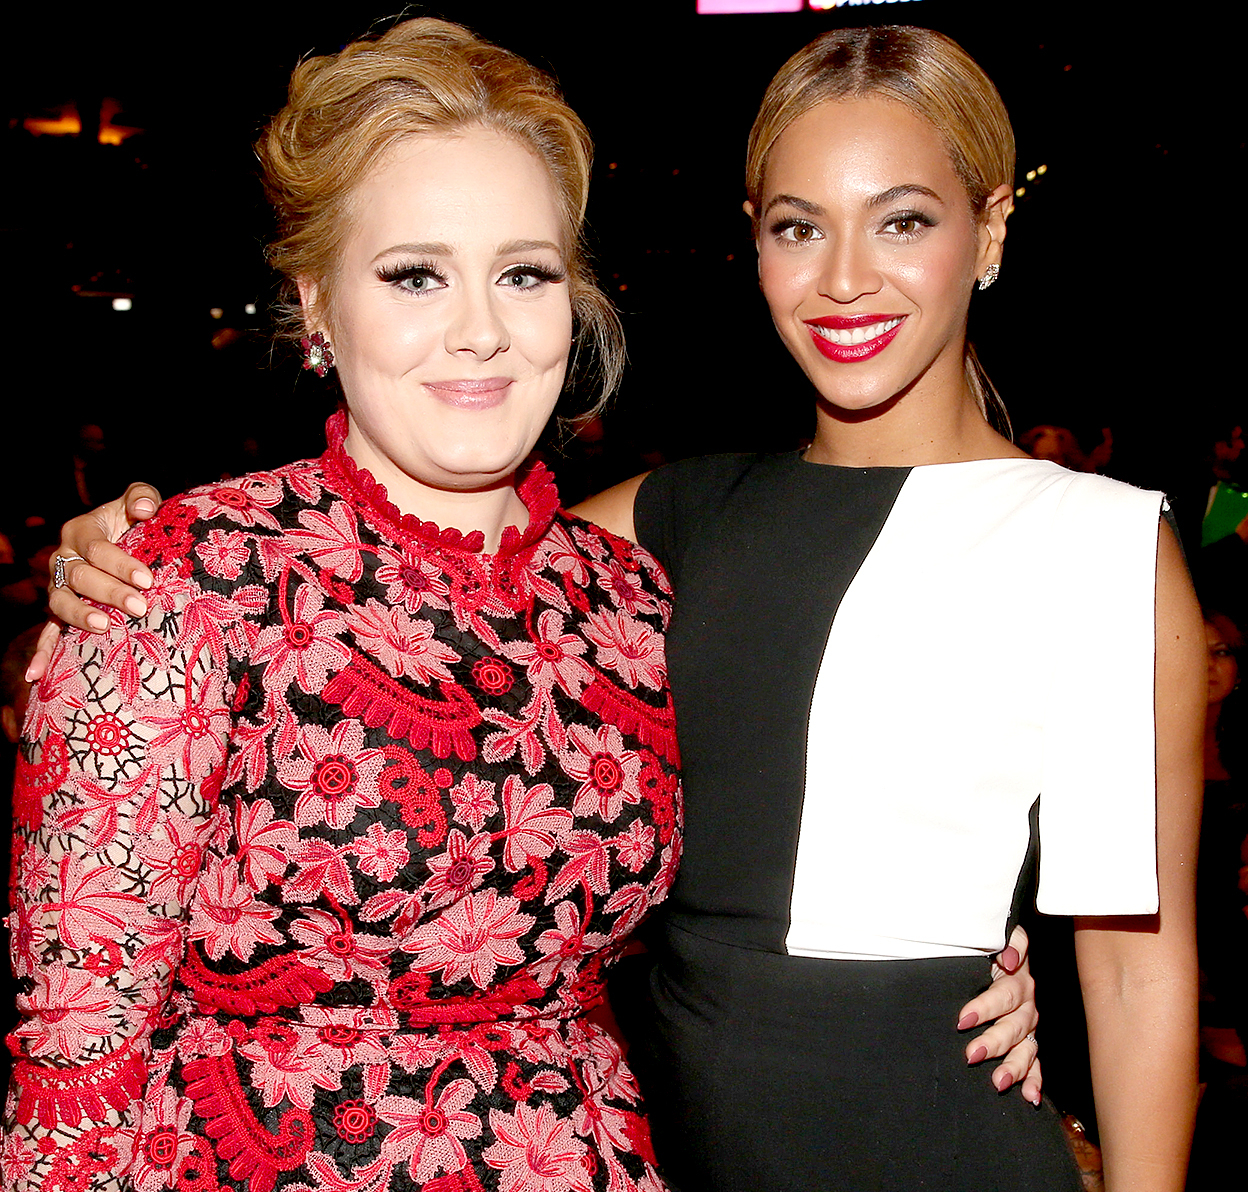 Adele (left) and Beyoncé attend the 55th Annual Grammy Awards at Staples Center on Feb. 10, 2013, in Los Angeles.